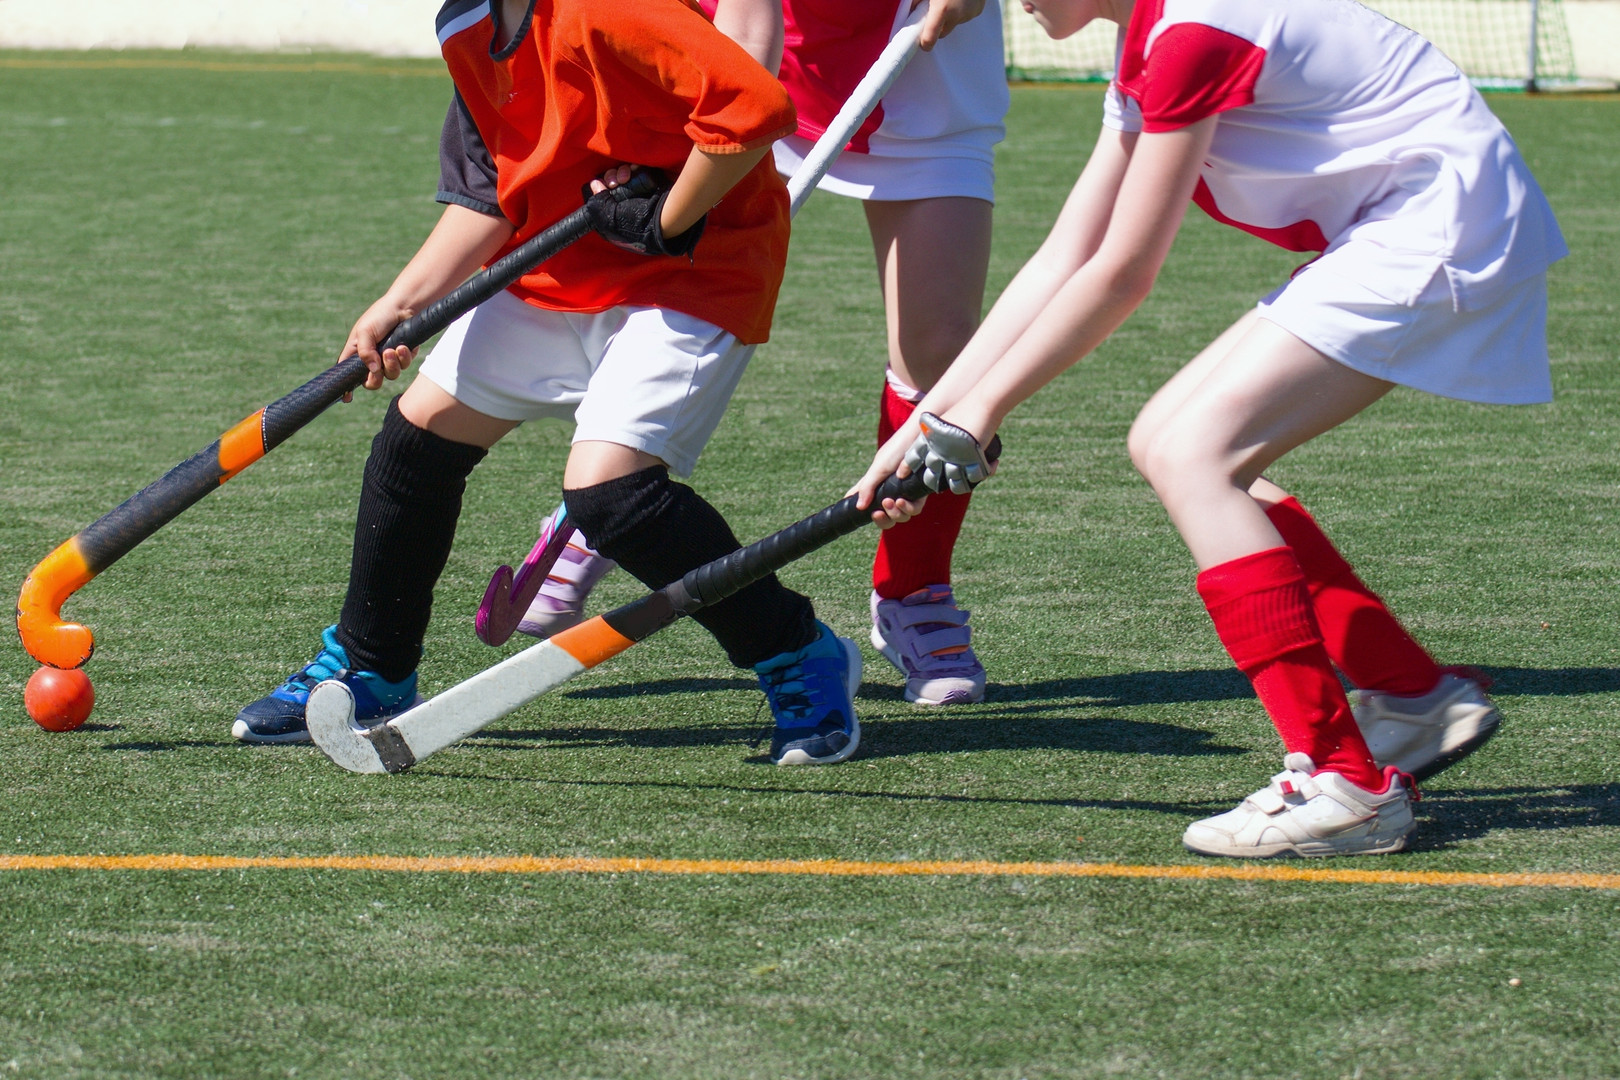 Children playing field hockey competitiv